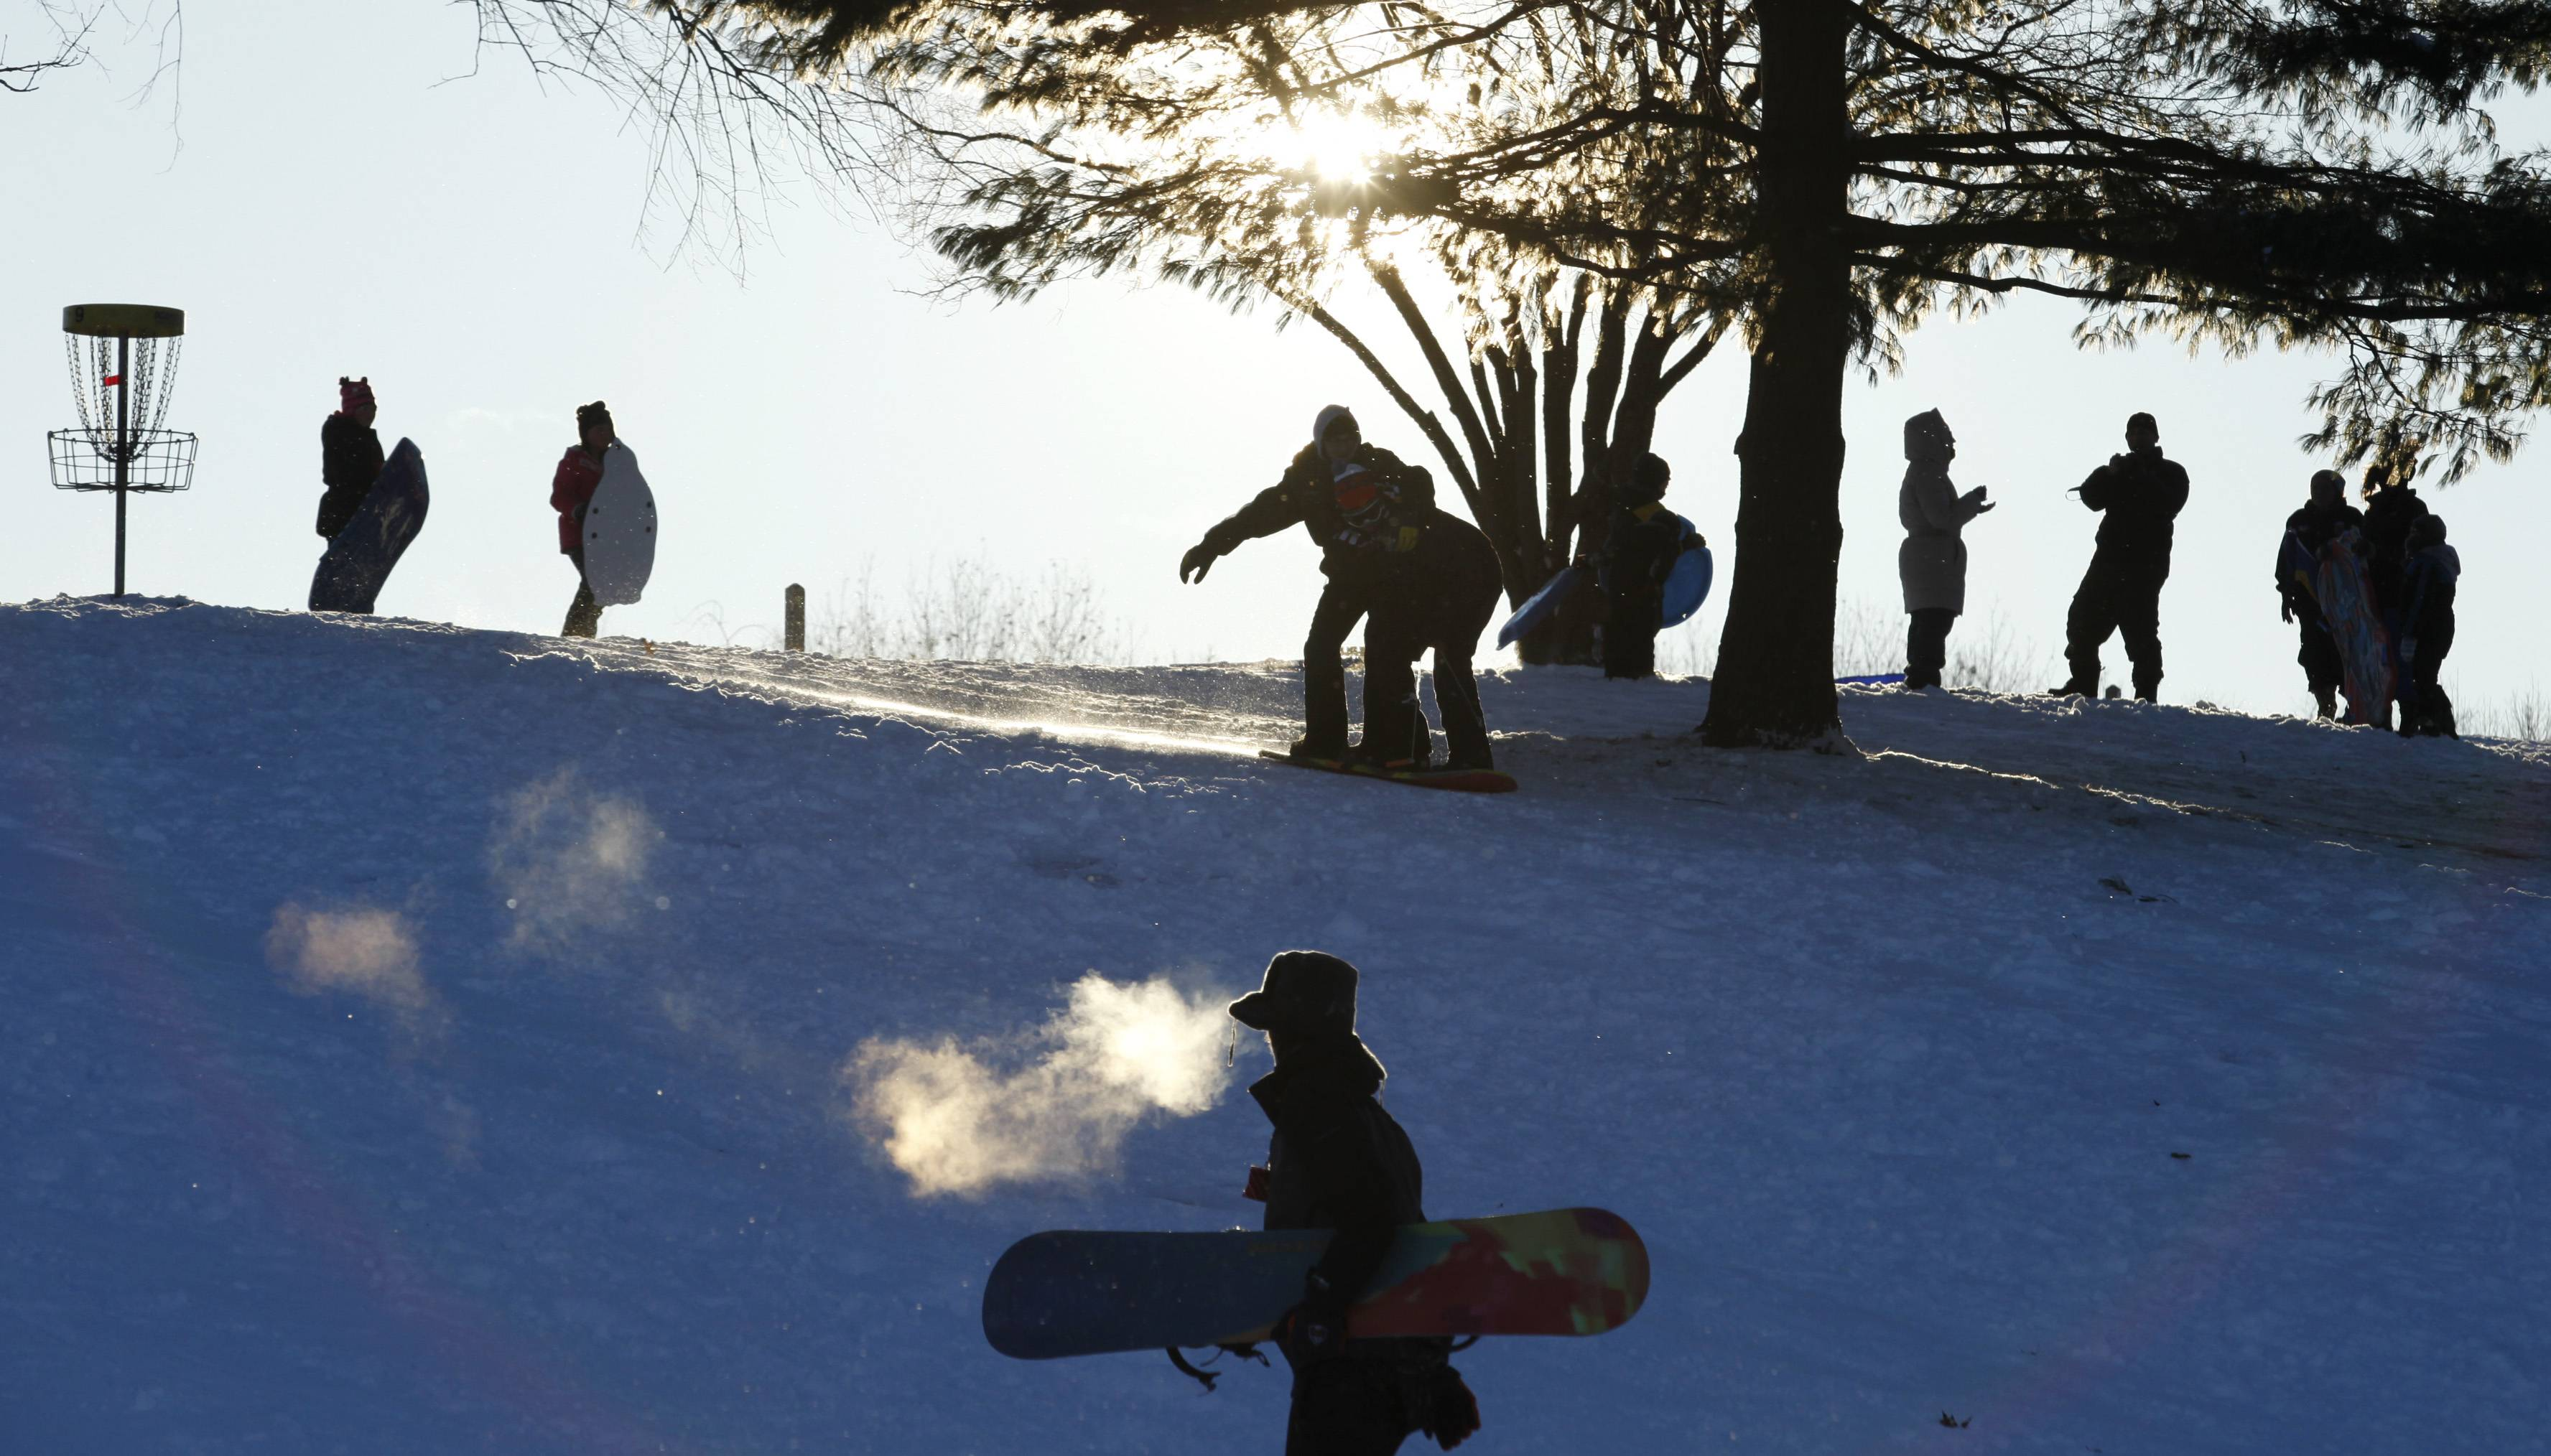 A snowboarder exhales into the frigid air as he hikes to the top of the hill during the recent Polar Vortex of 2014 at Randall Oaks Park in West Dundee. The popular sledding hill was packed with sledders, snowboarders and parents with cameras as the recent snowfall created a perfect chance to get out and play.